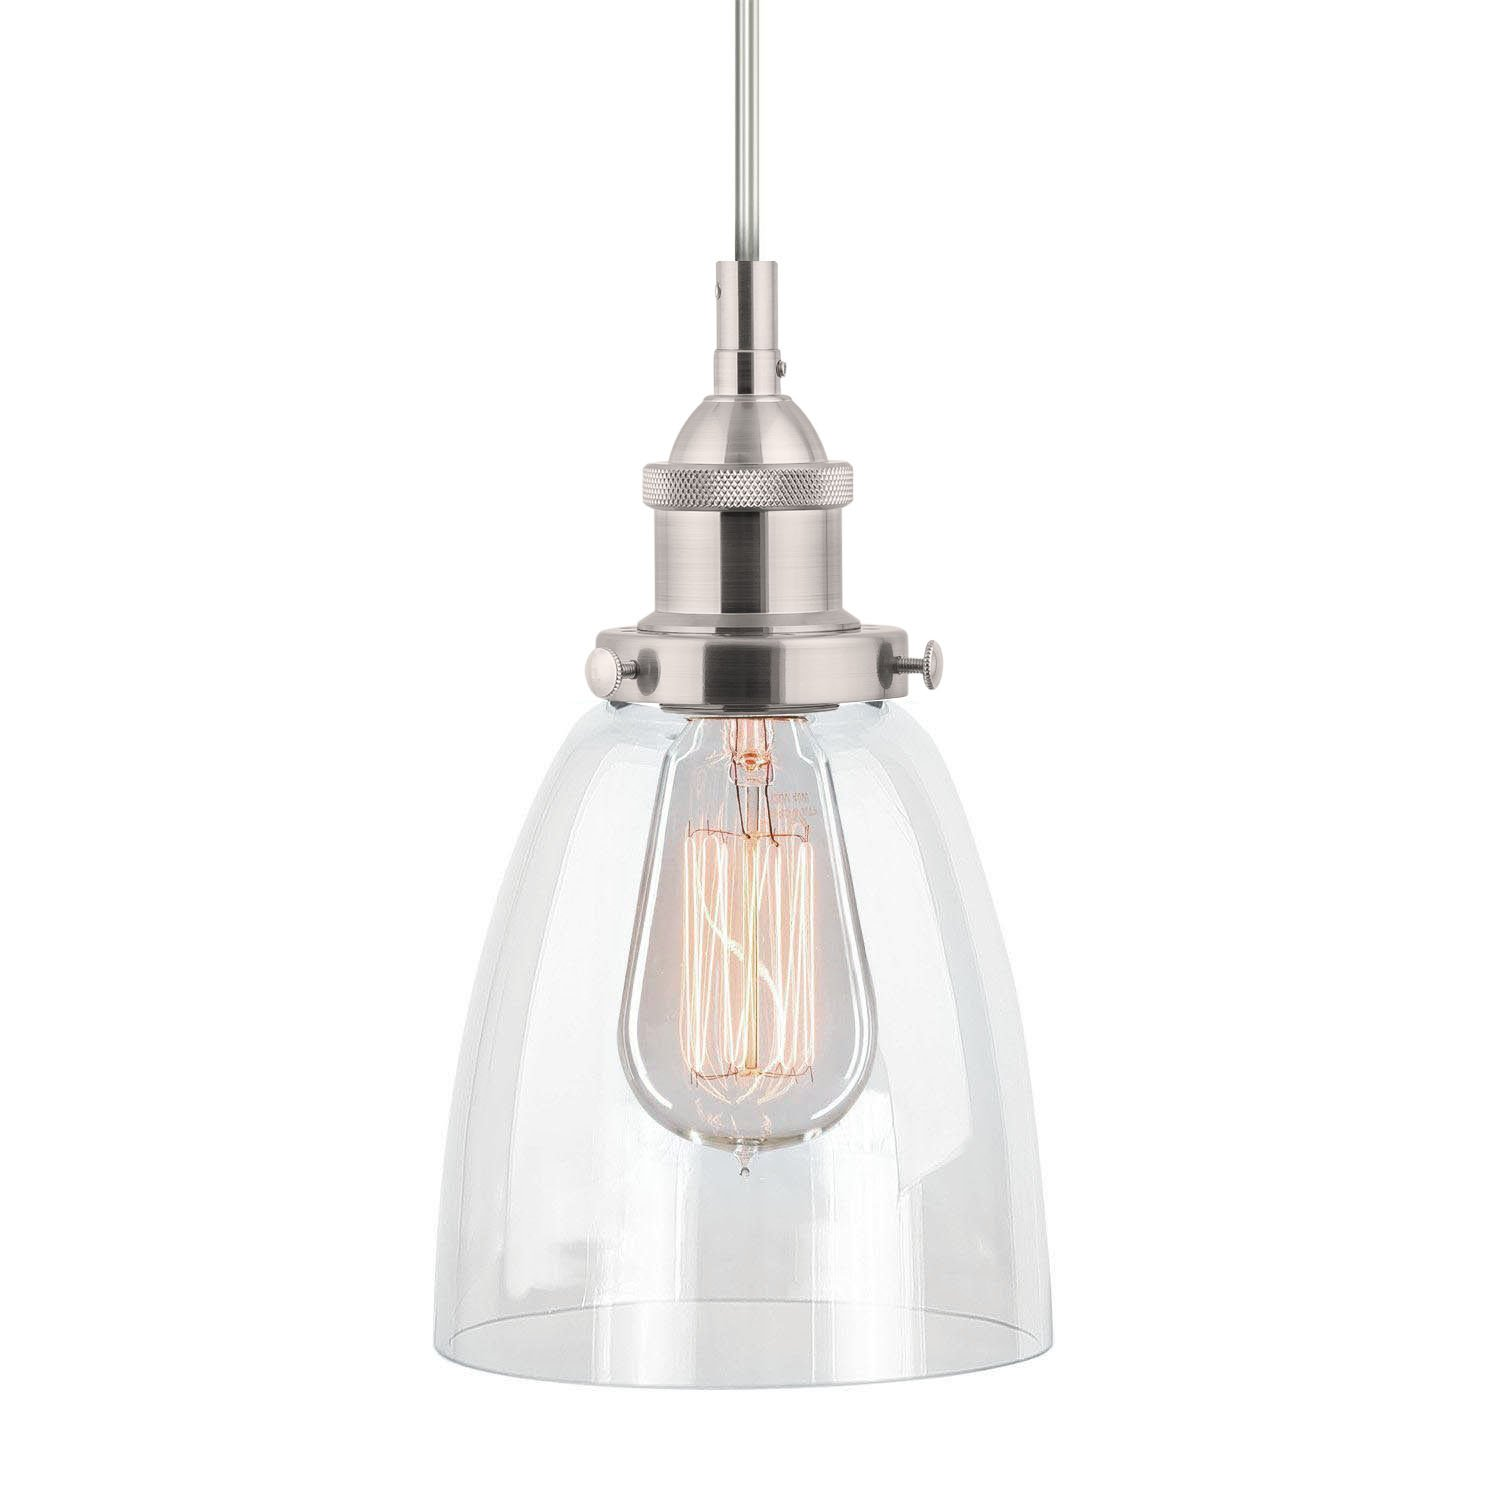 linea di liara fiorentino brushed nickel onelight industrial factory pendant lamp with clear glass shade llp281bn amazoncom